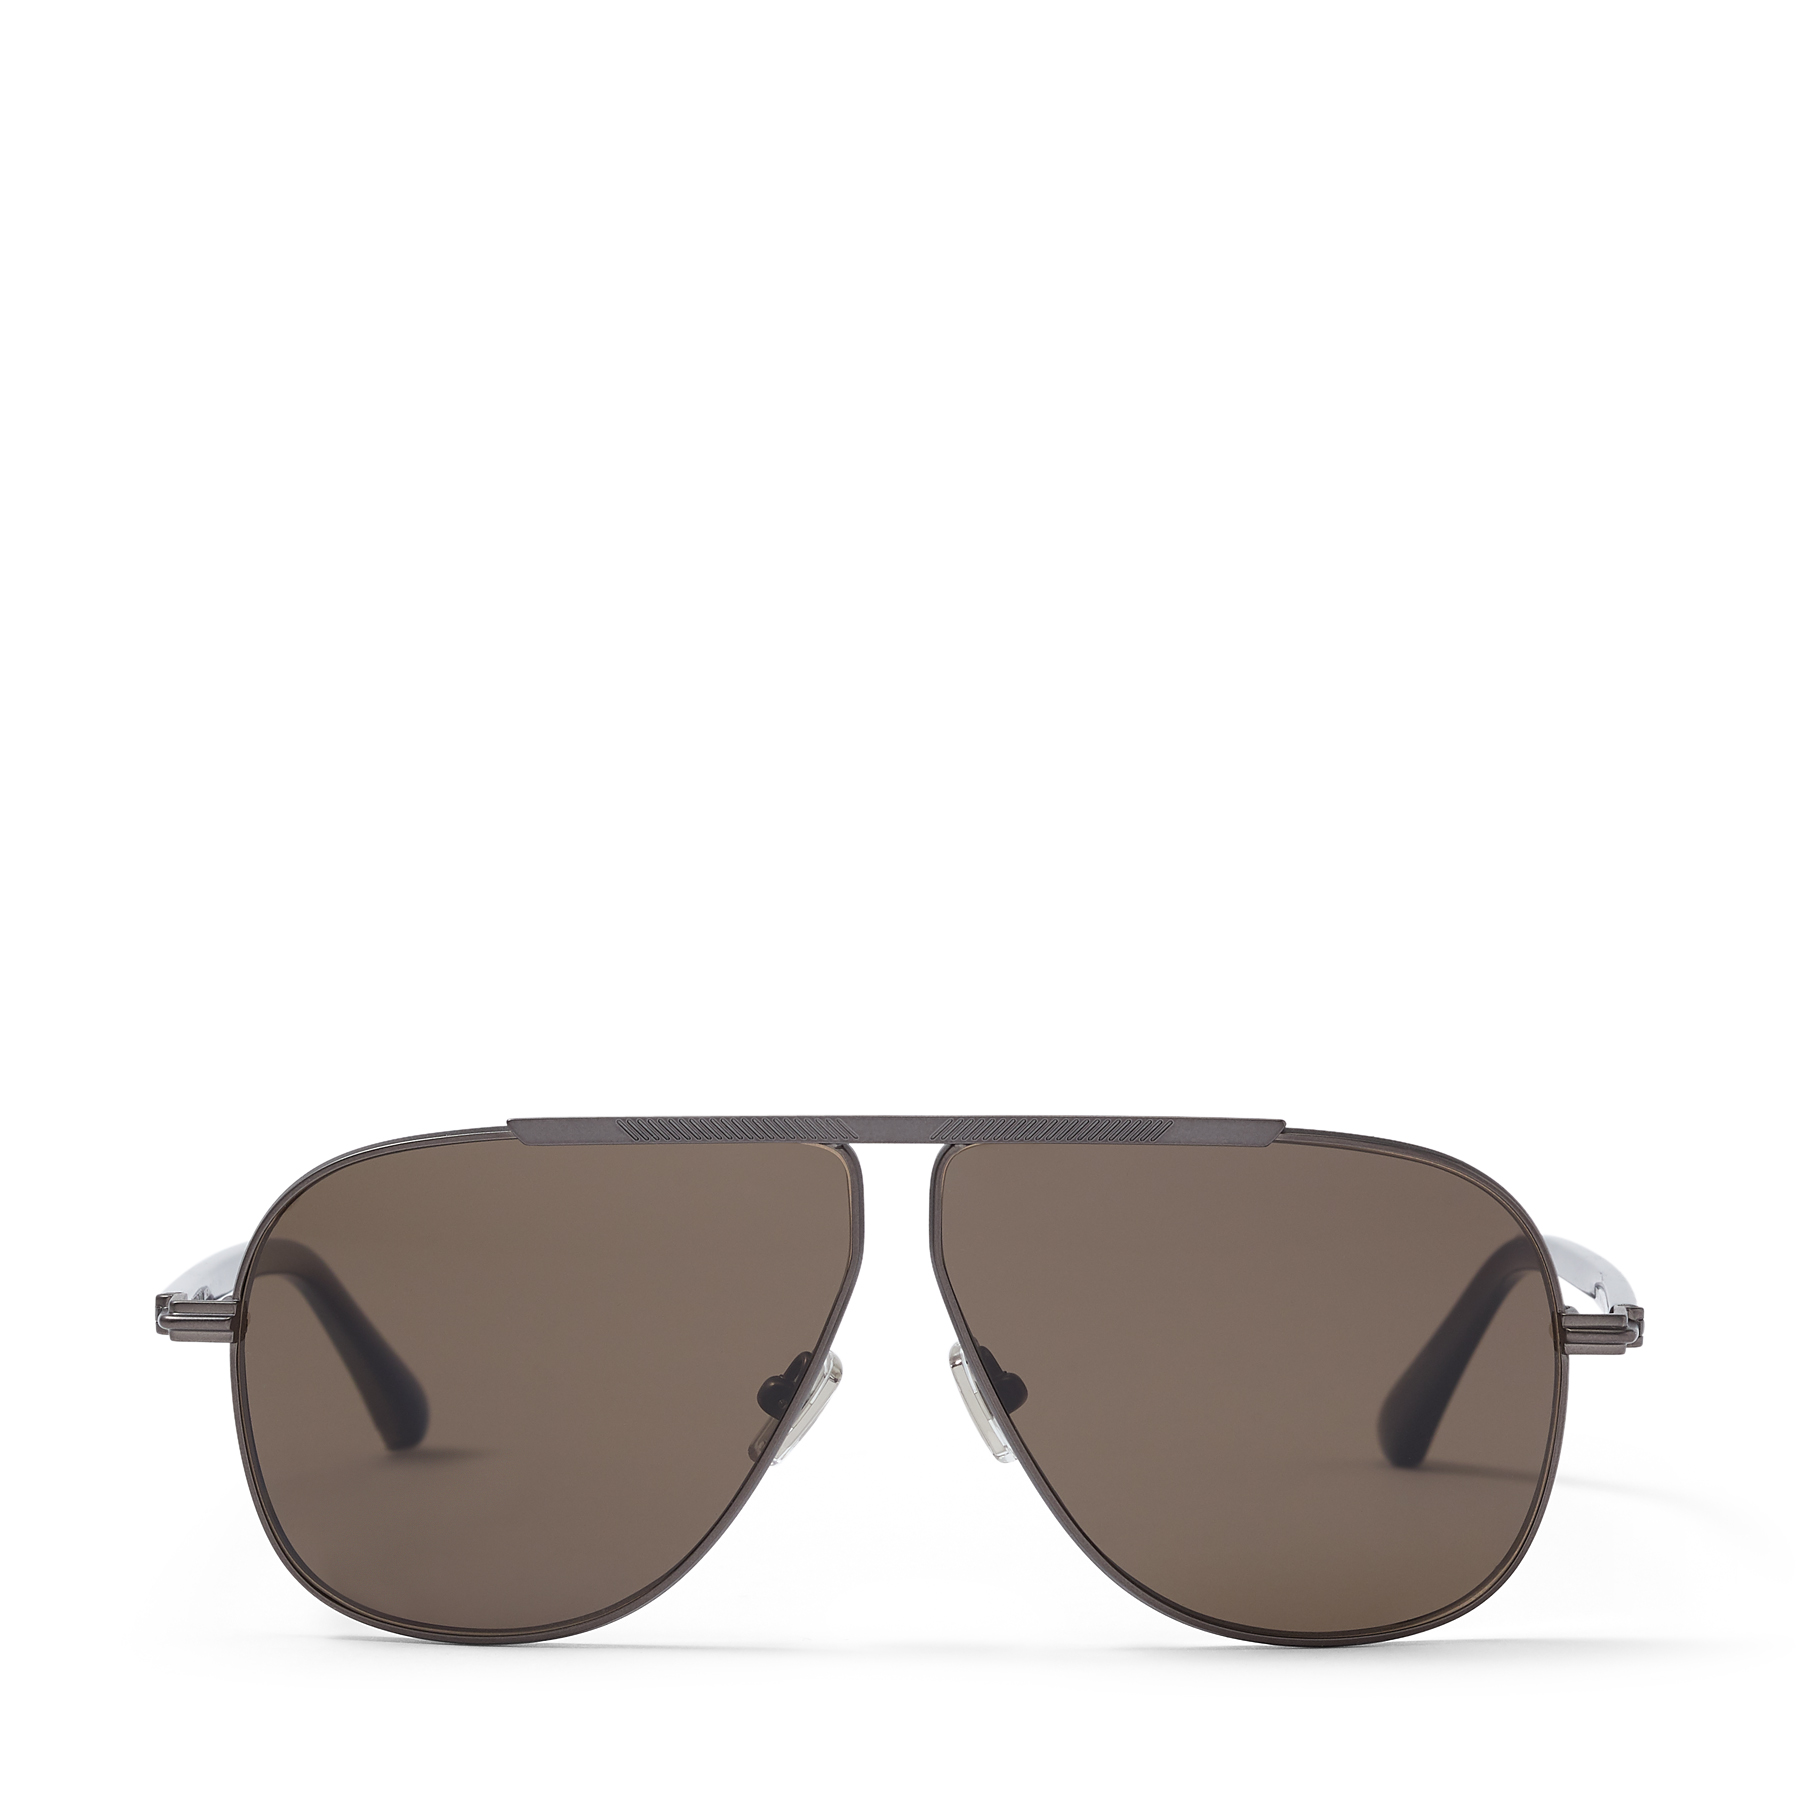 Crafted from matte dark ruthenium to an aviator shape, these Italian-crafted EWAN sunglasses give off refined edge. They\\\'re set with sleek brown polarized lenses, and finished with grey tips that continue the mood.